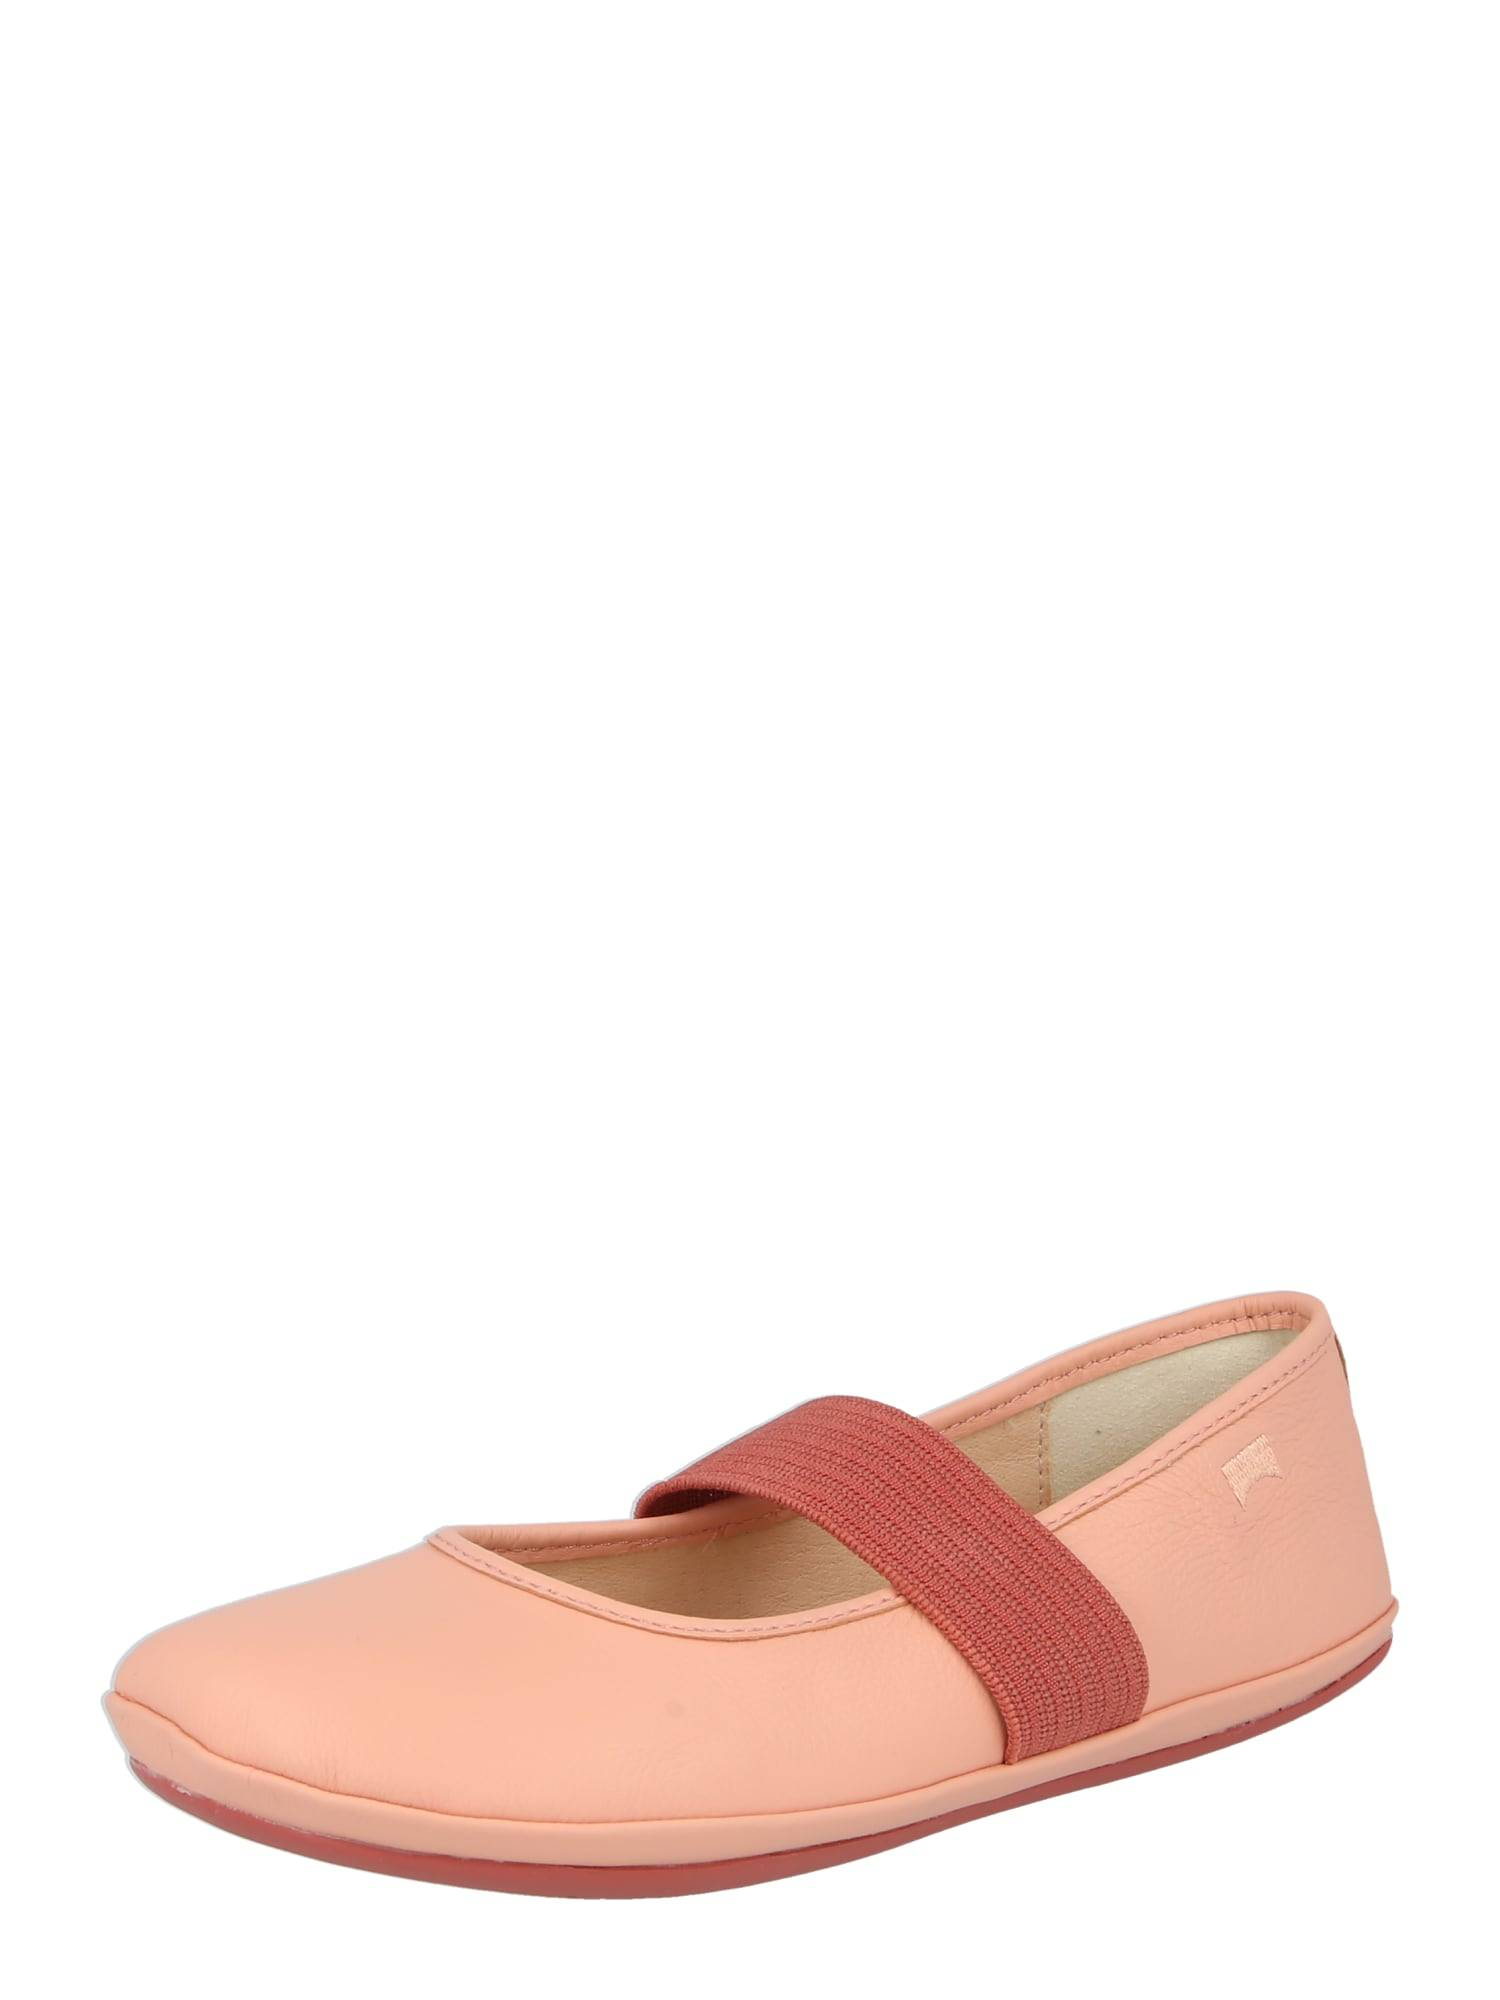 CAMPER Ballerines ' Right '  - Rose - Taille: 35 - girl